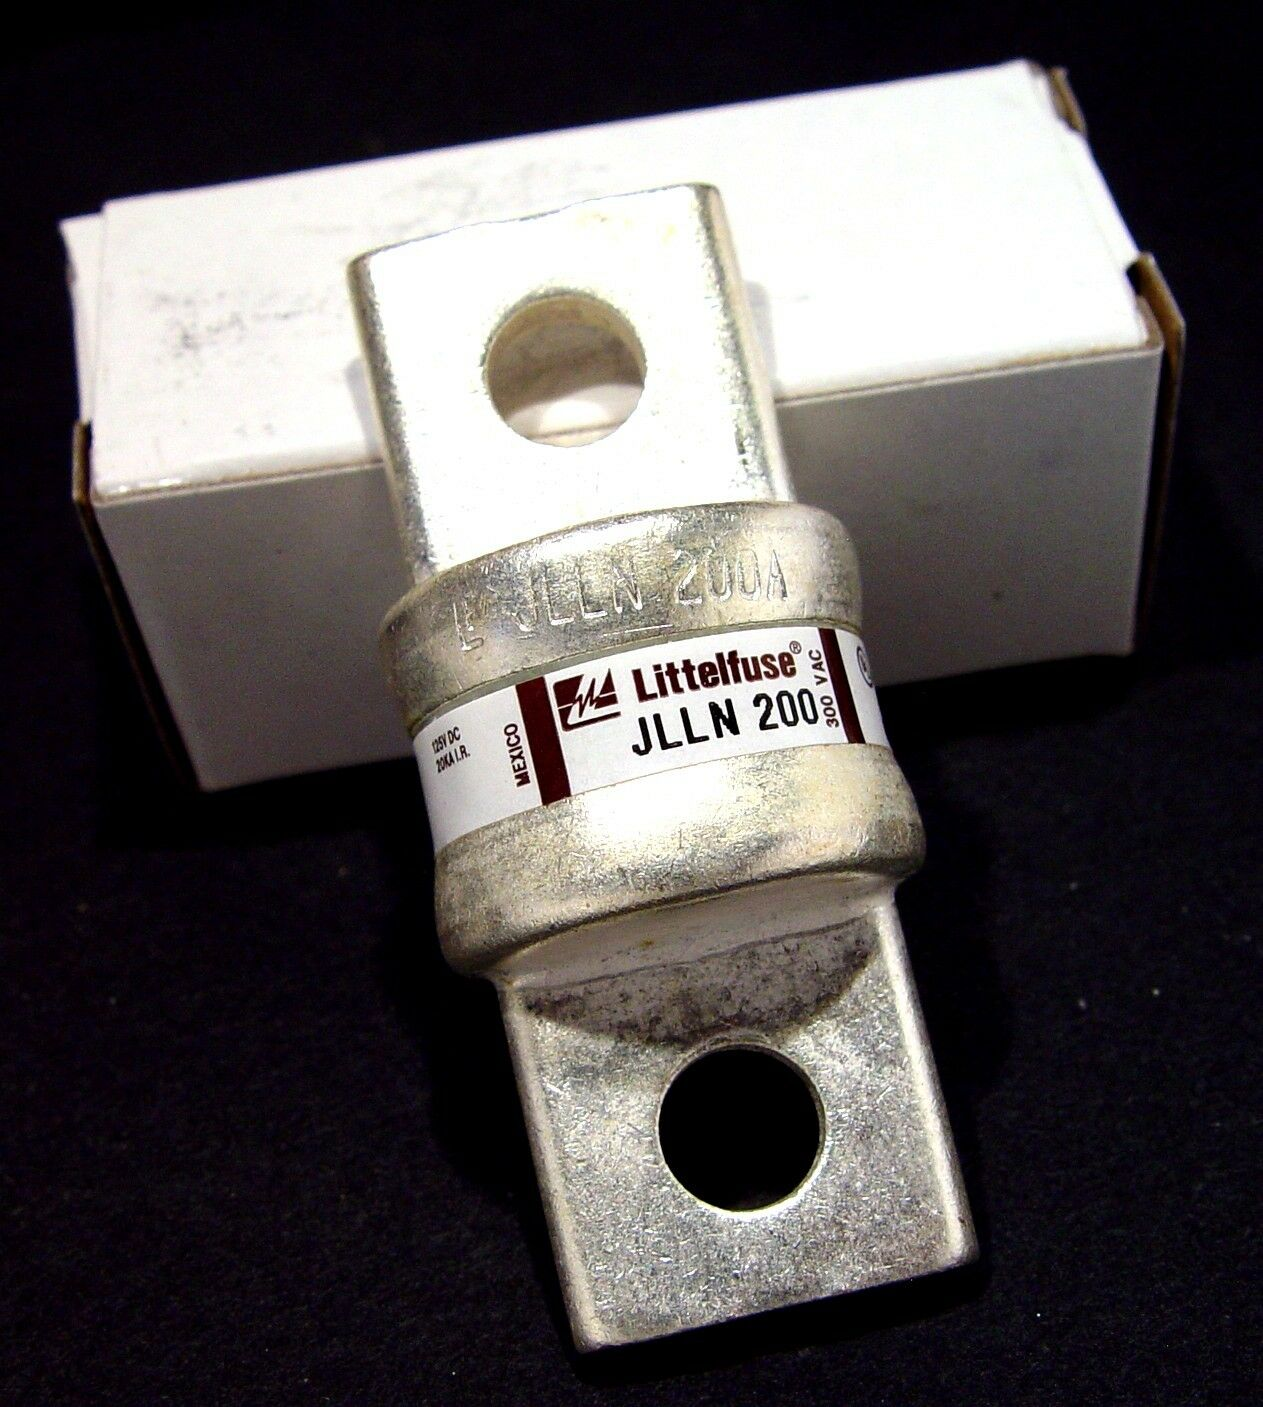 200 Amp Class T Fuse Jlln Littelfuse Dc Rated Boat Rv Or Solar New Box 1 Of 2only 4 Available